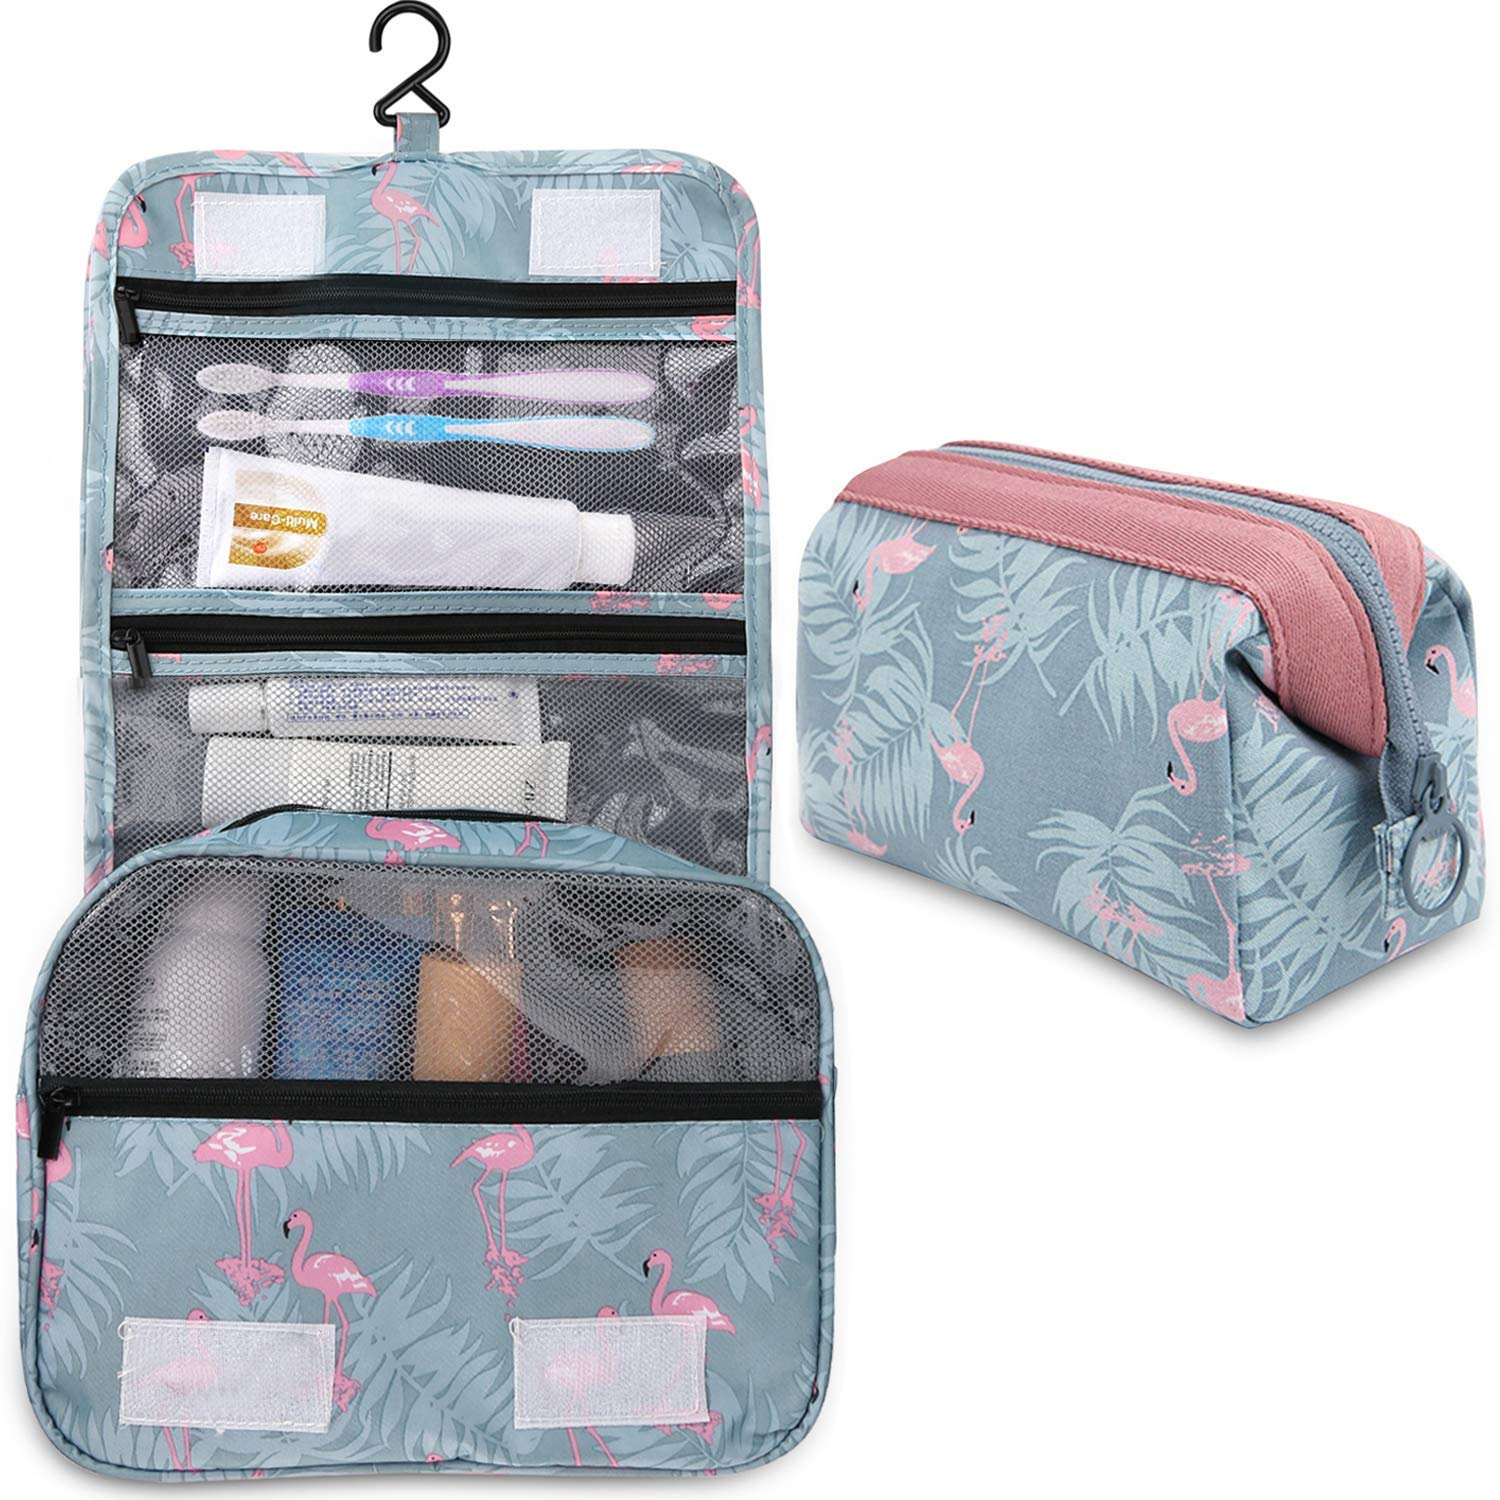 2 Pieces Toiletry Bag Multifunction Hanging Cosmetic Bag Portable ... 9603da9f36bfe